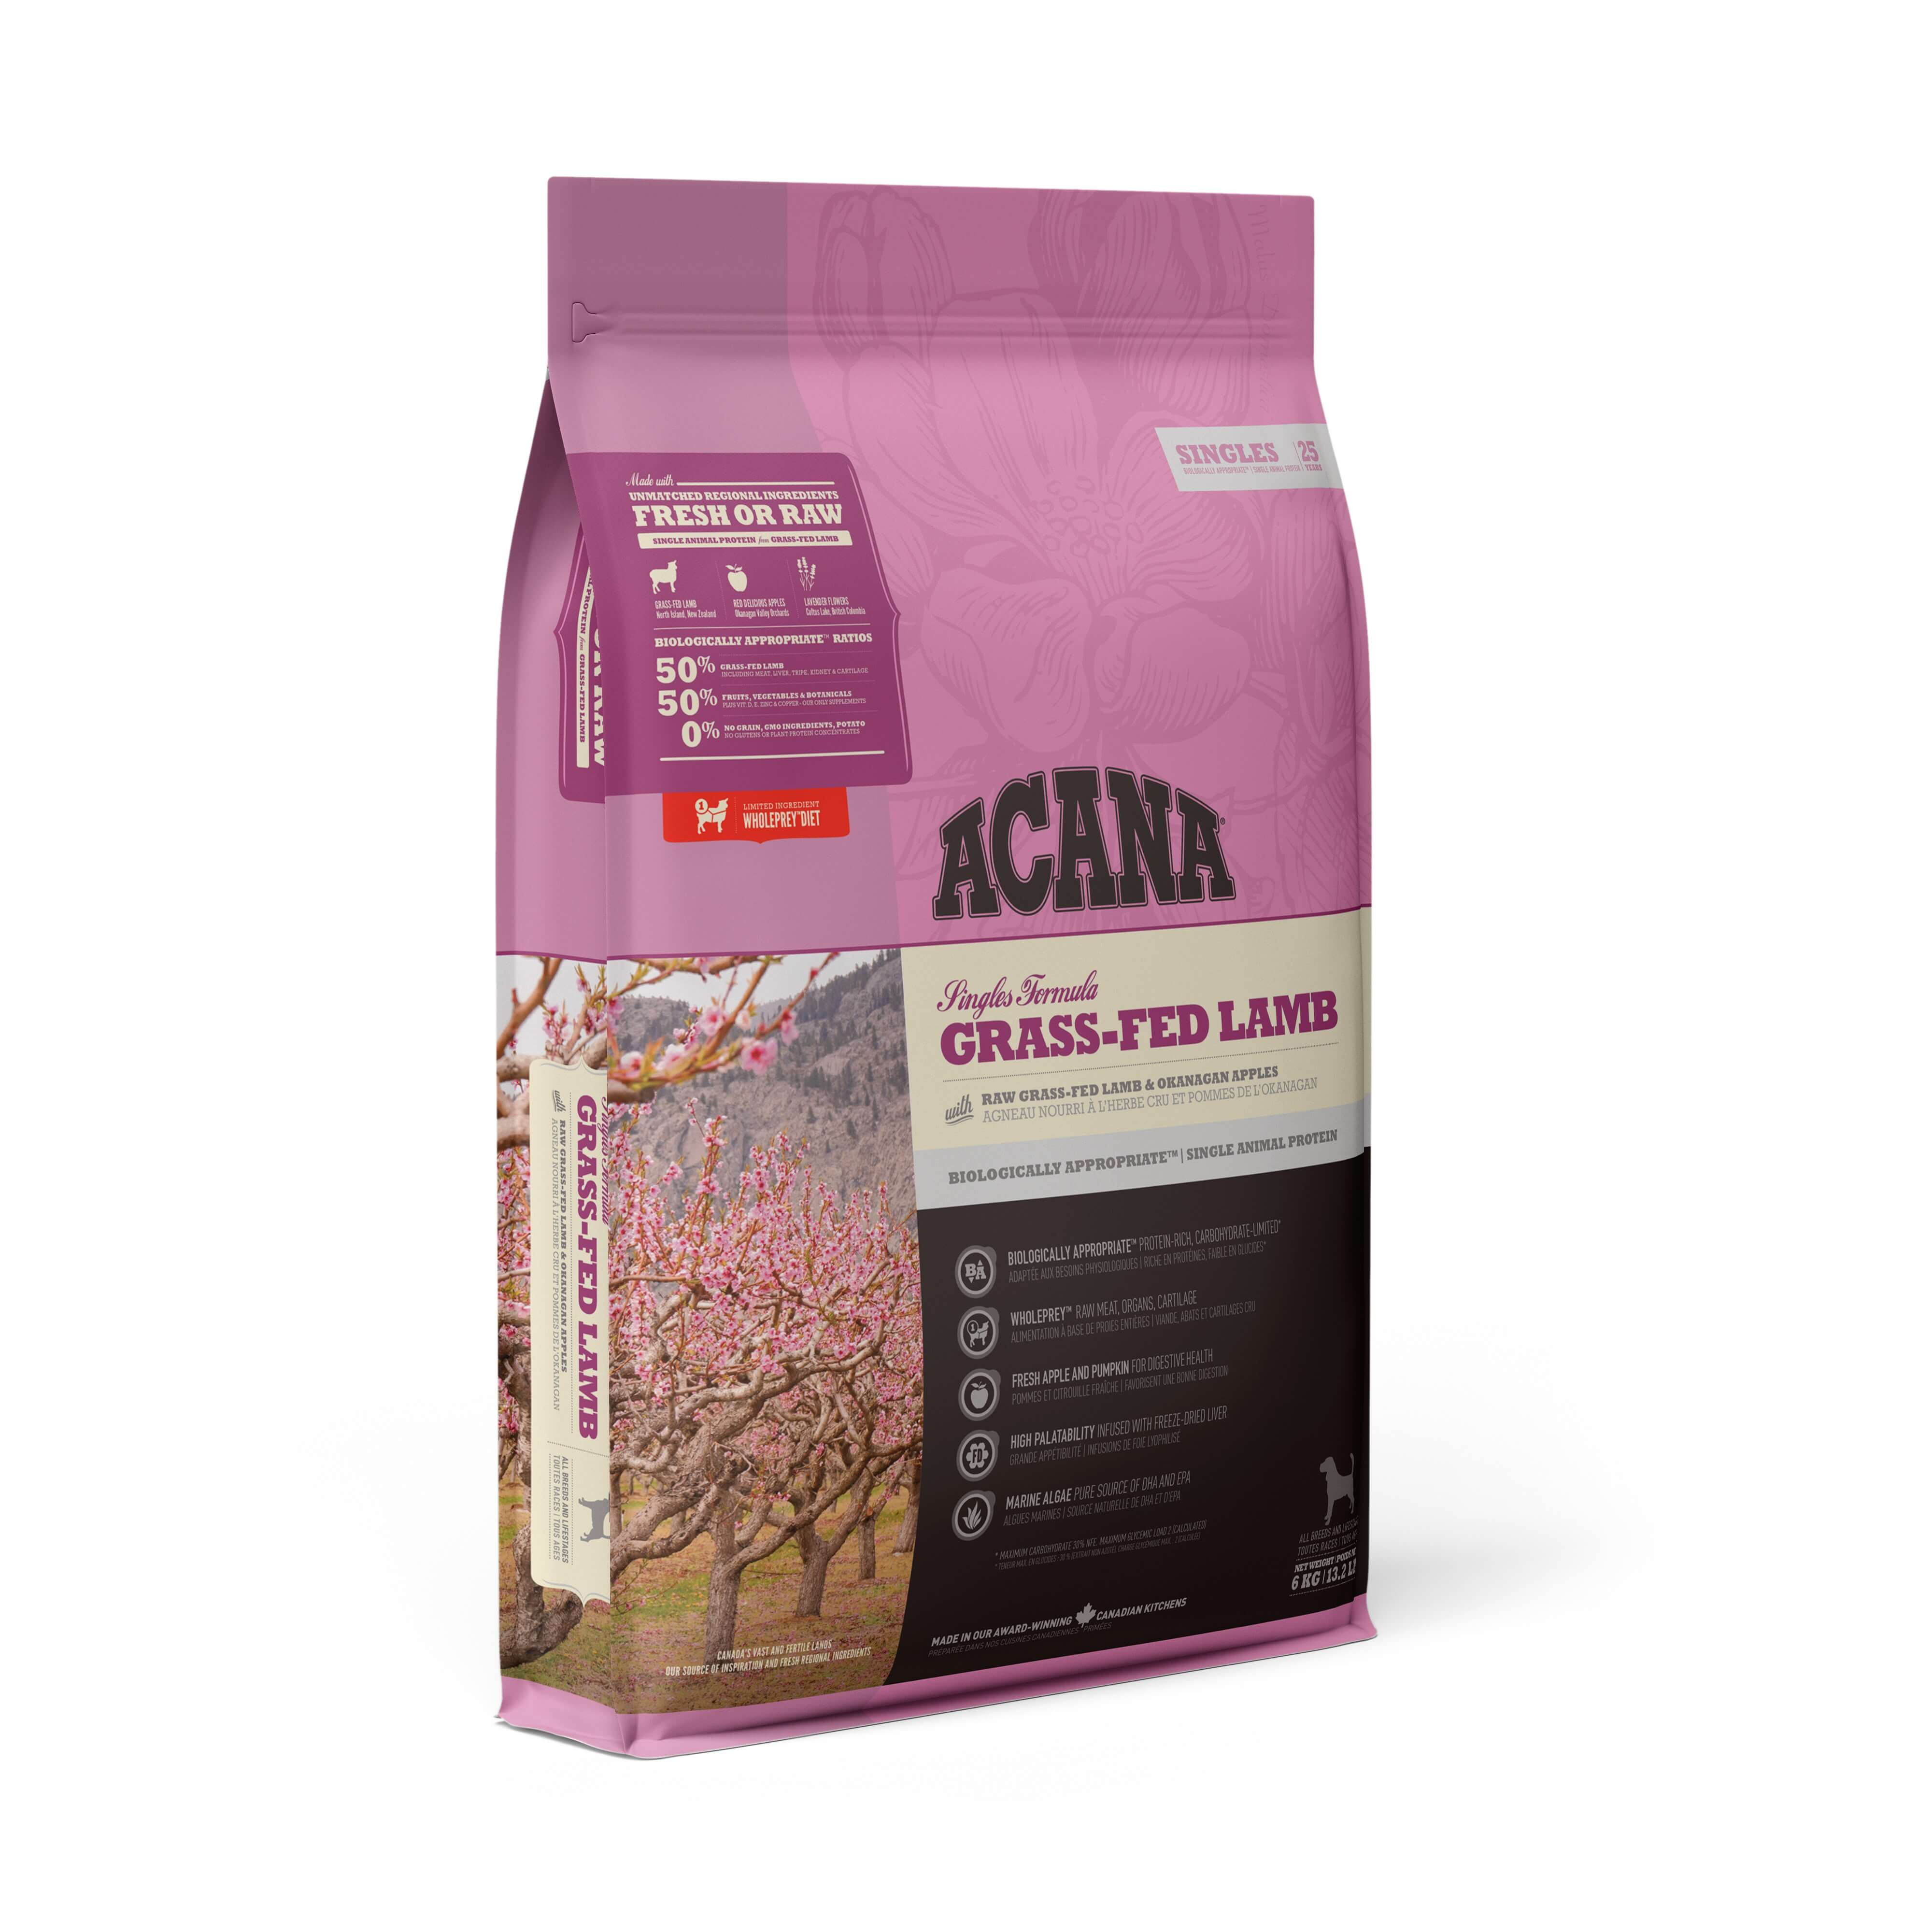 Acana Grass-Fed Lamb | 11.4kg - Click to enlarge picture.